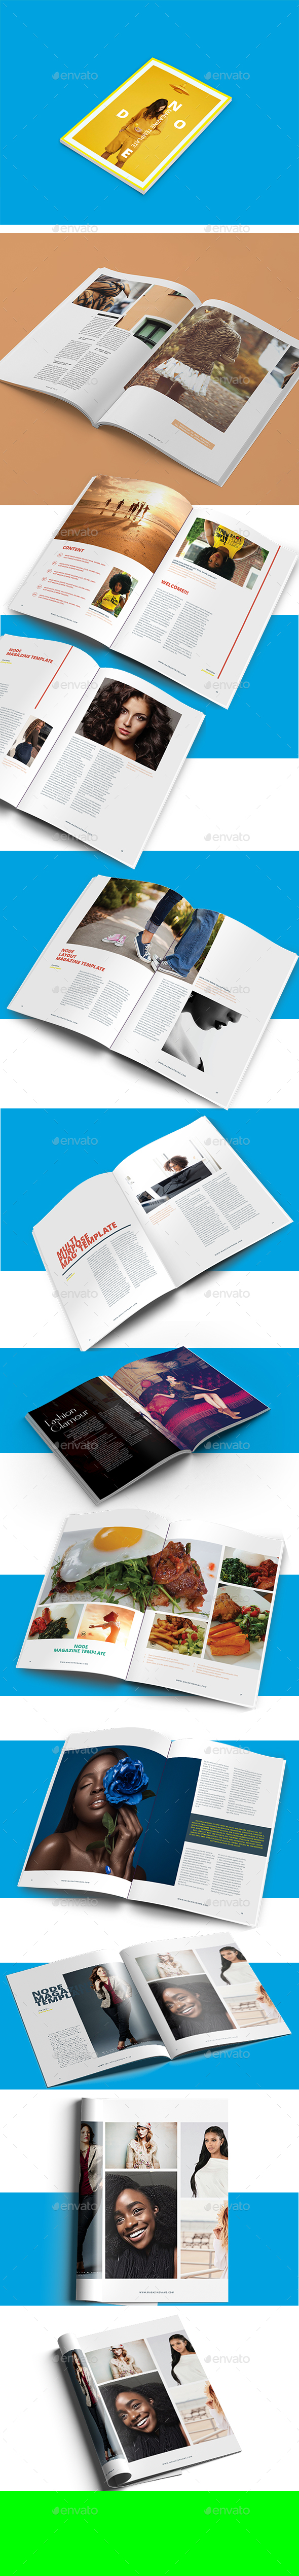 Node Minimalist Magazine Design Template / Layout - Magazines Print Templates